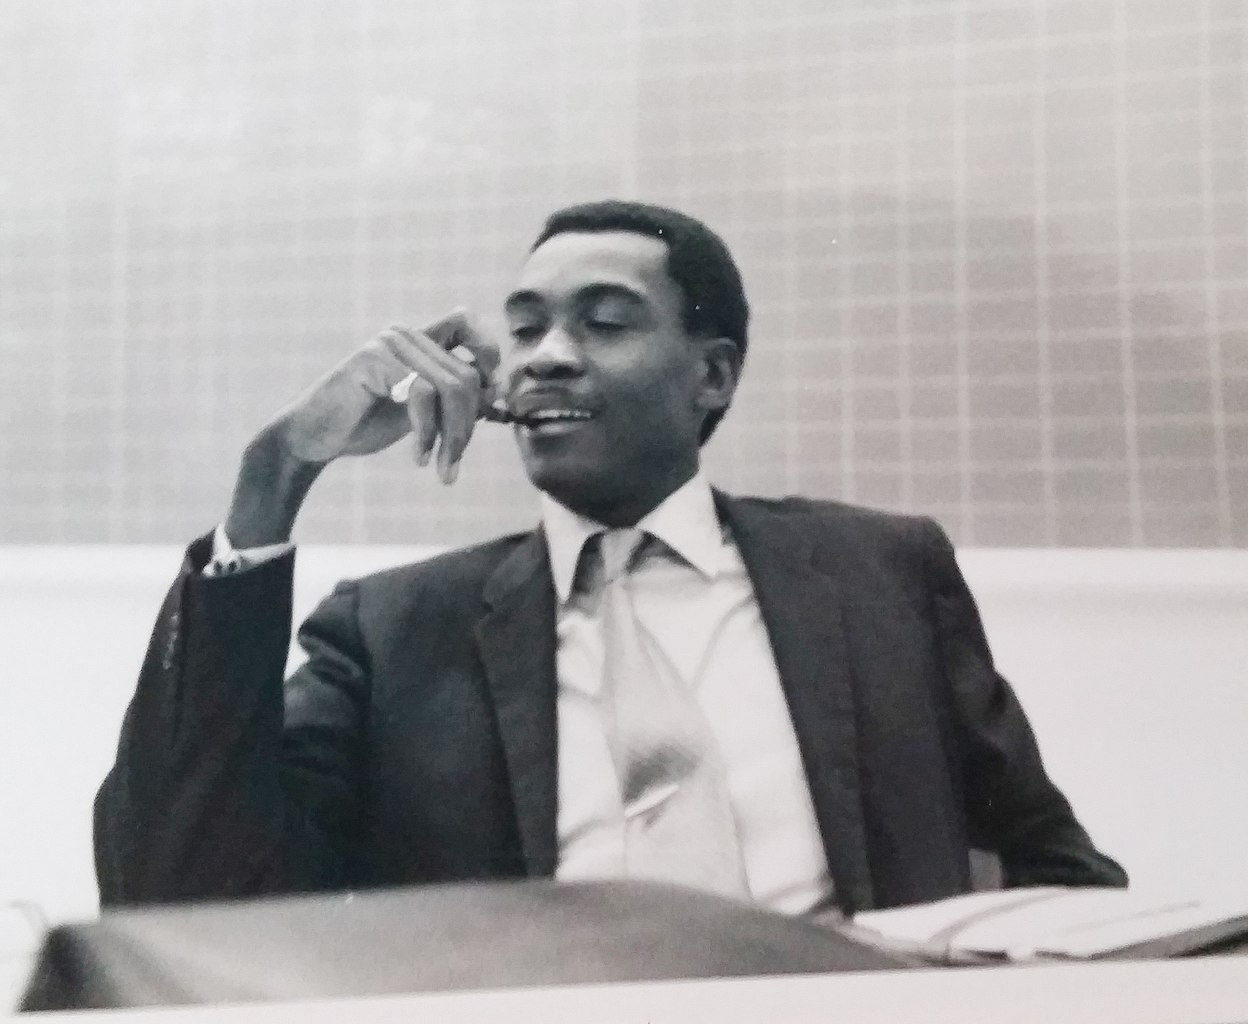 Arthur McDuffie - pictured in 1979